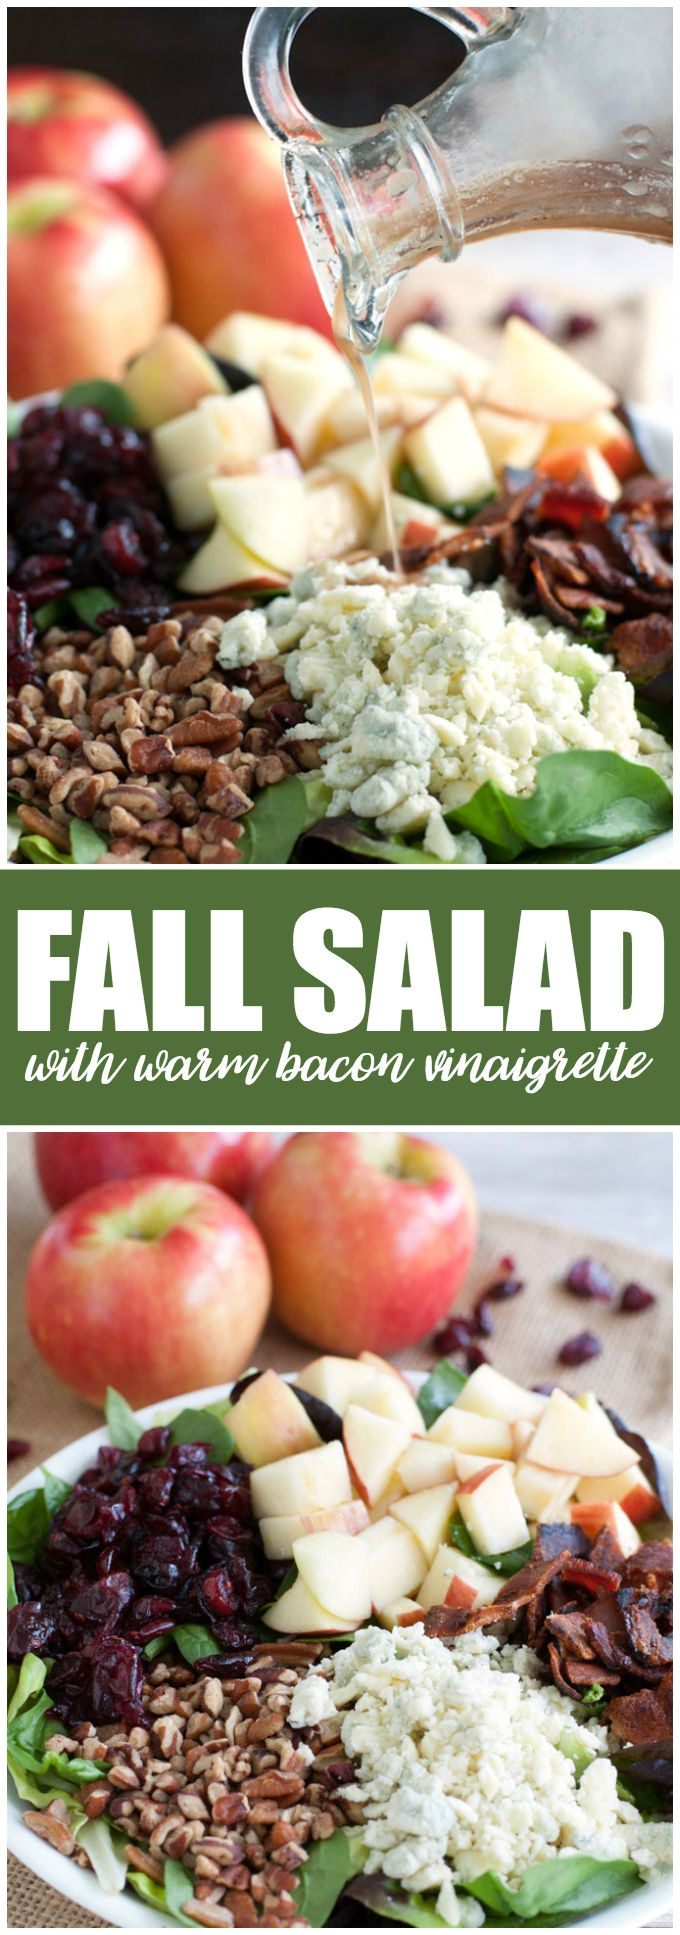 Fall Salad with Warm Bacon Vinaigrette - You'll love this hearty salad with its autumn flavors! It's packed full of goodness with Honeycrisp apples, pecans, dried cranberries, blue cheese and an oh so tasty warm bacon vinaigrette dressing.